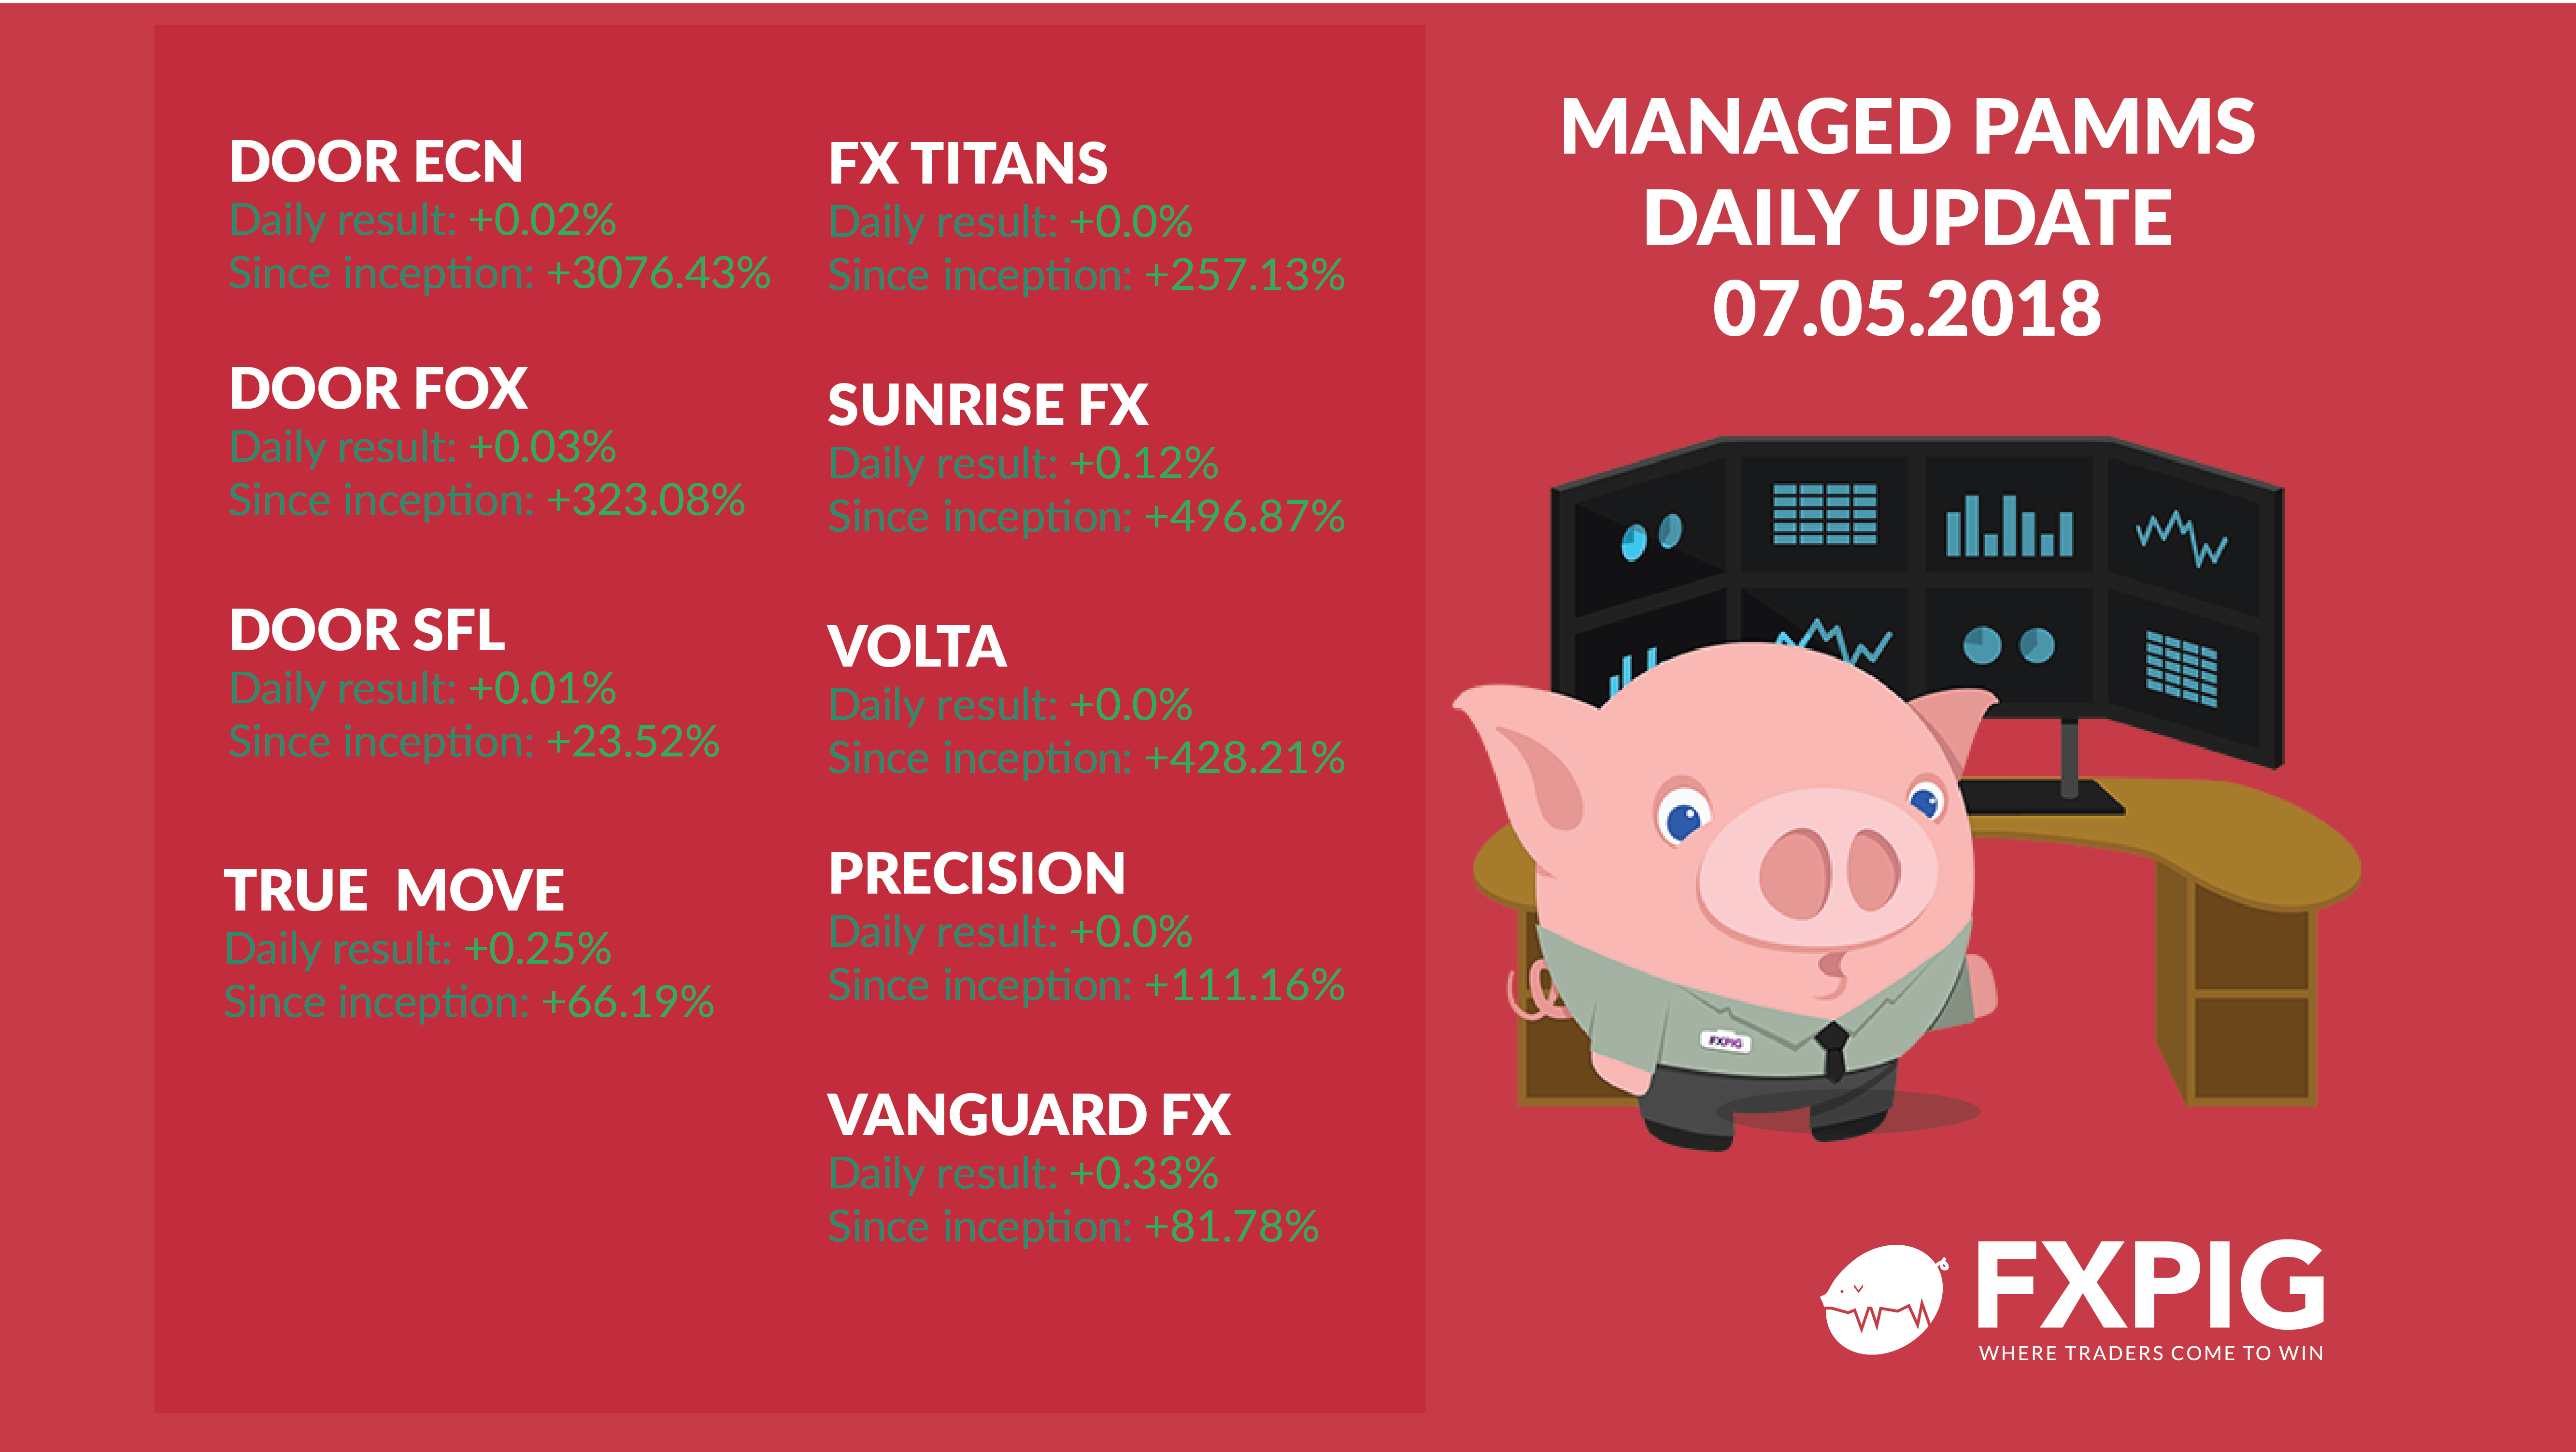 FOREX_Managed-accounts-daily-0705_FXPIG